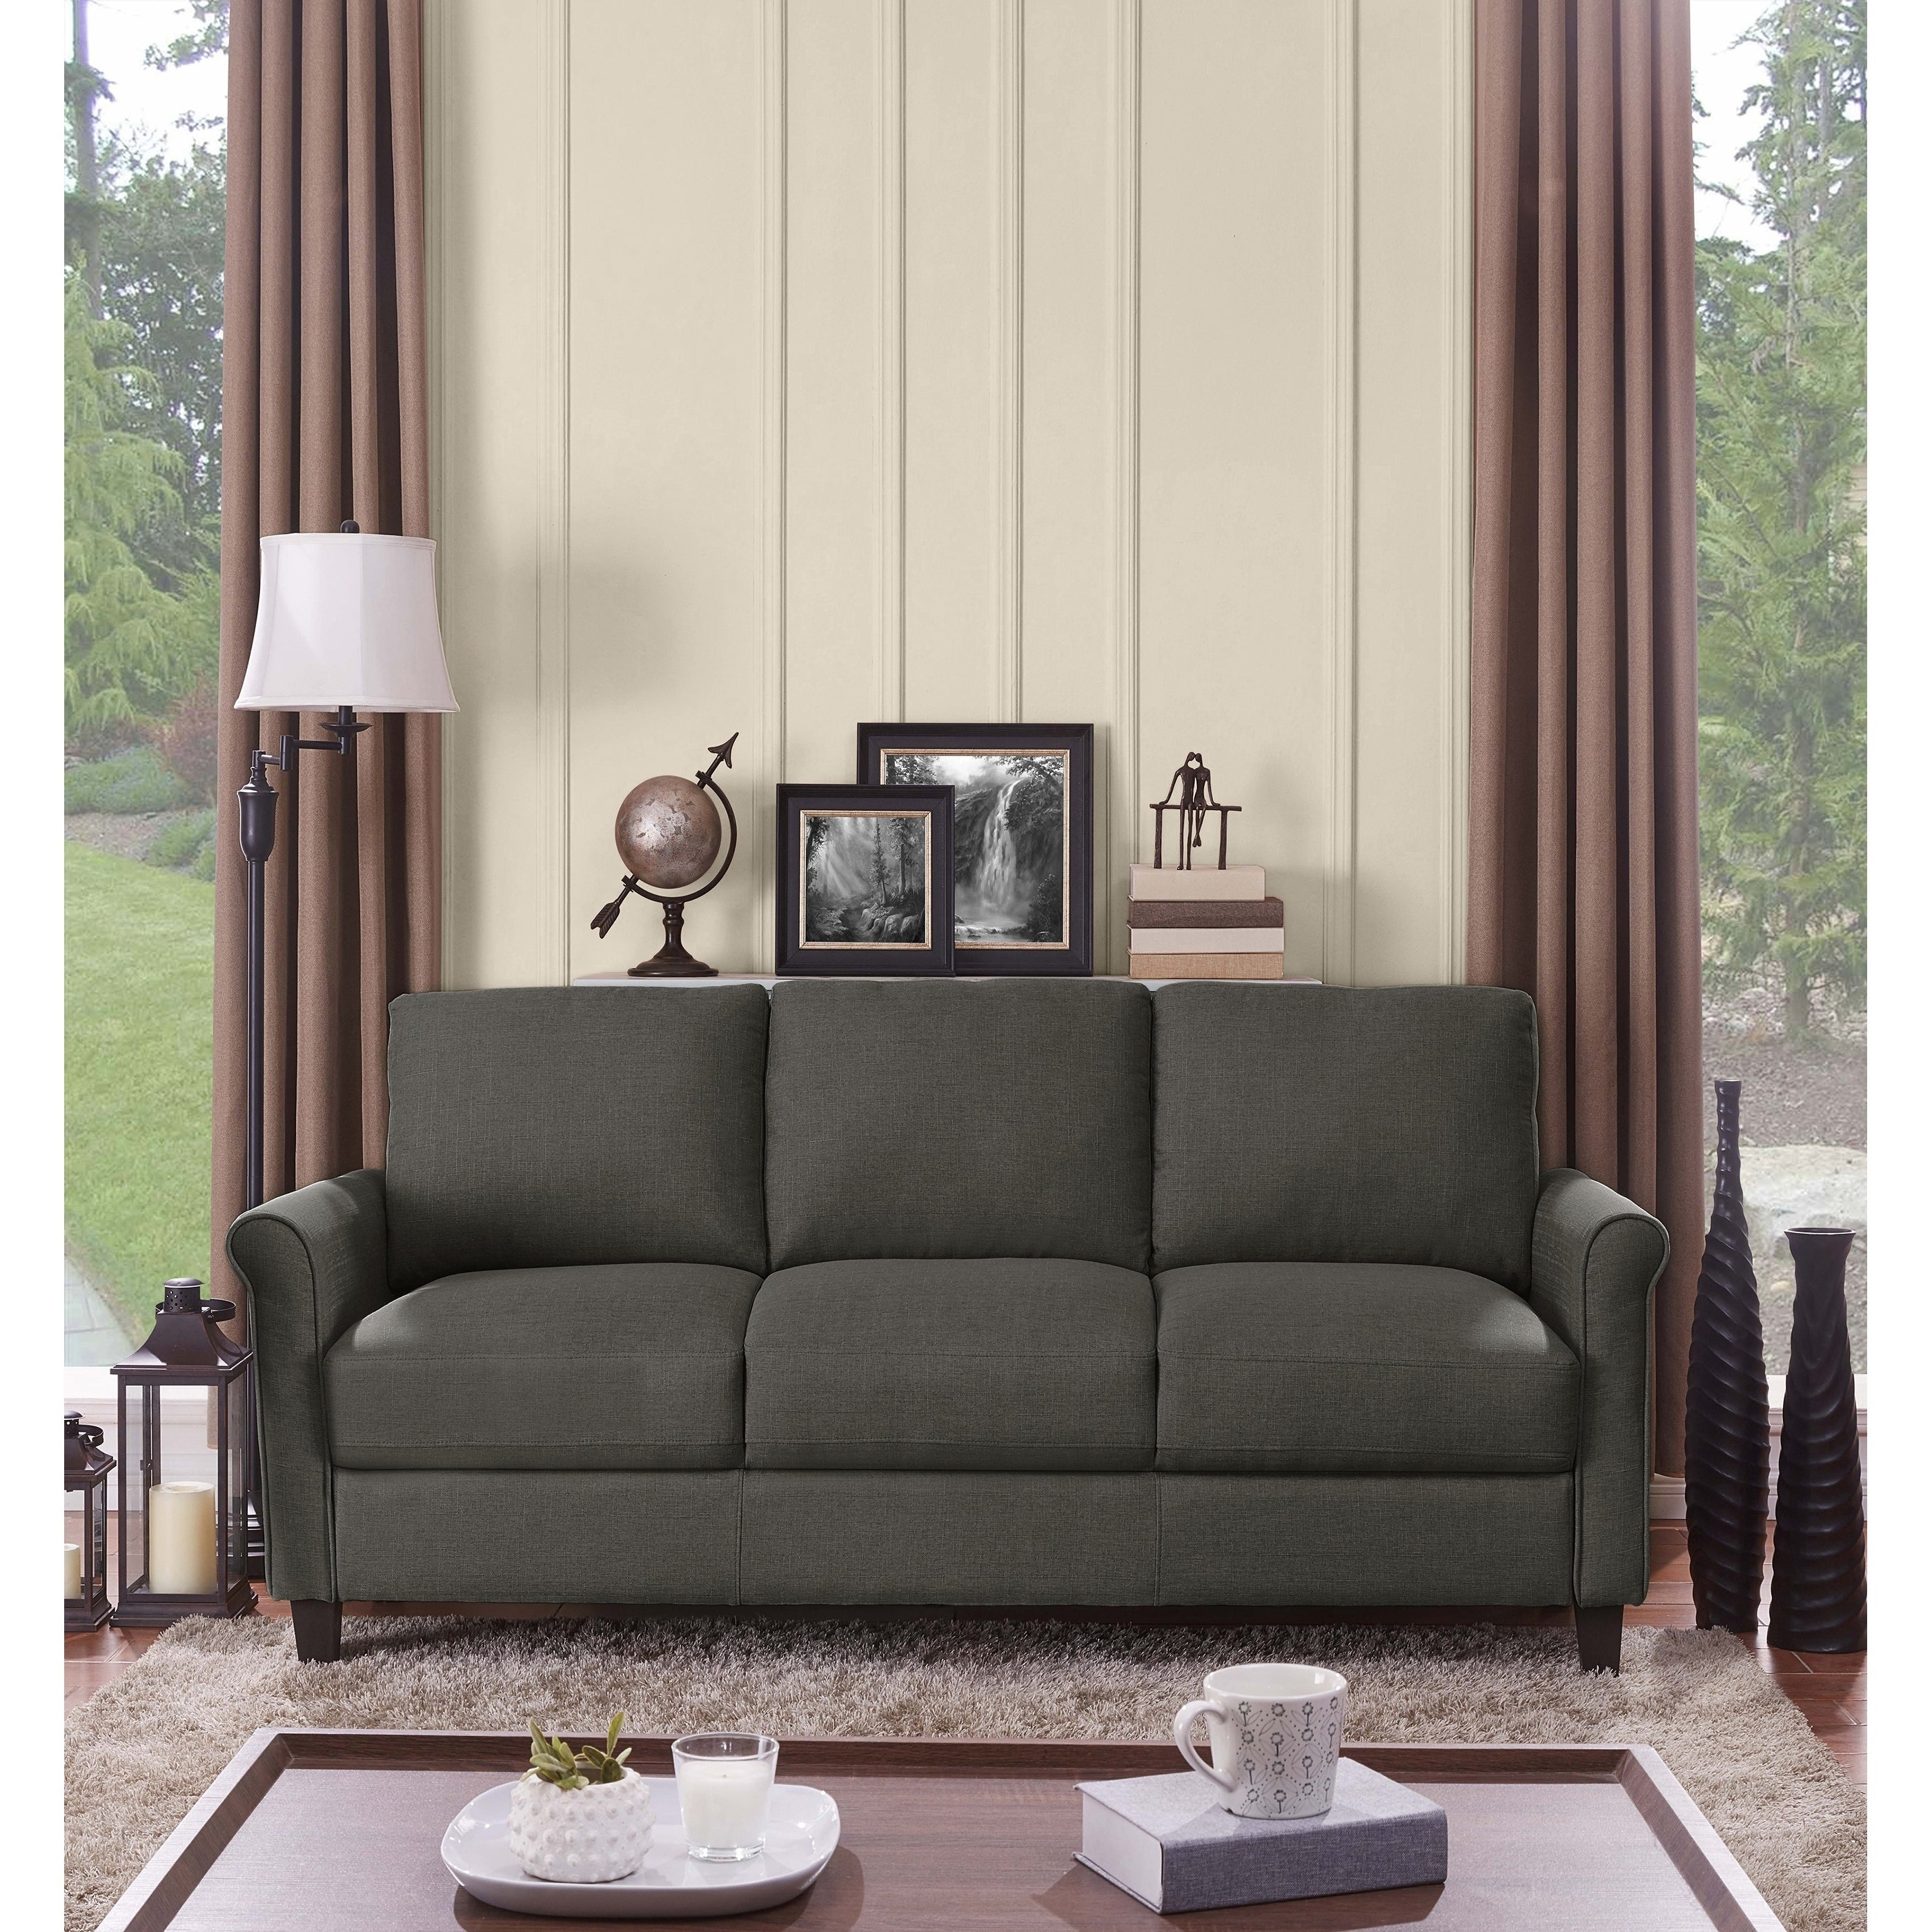 Tremendous Buy Handy Living Sofas Couches Online At Overstock Our Machost Co Dining Chair Design Ideas Machostcouk